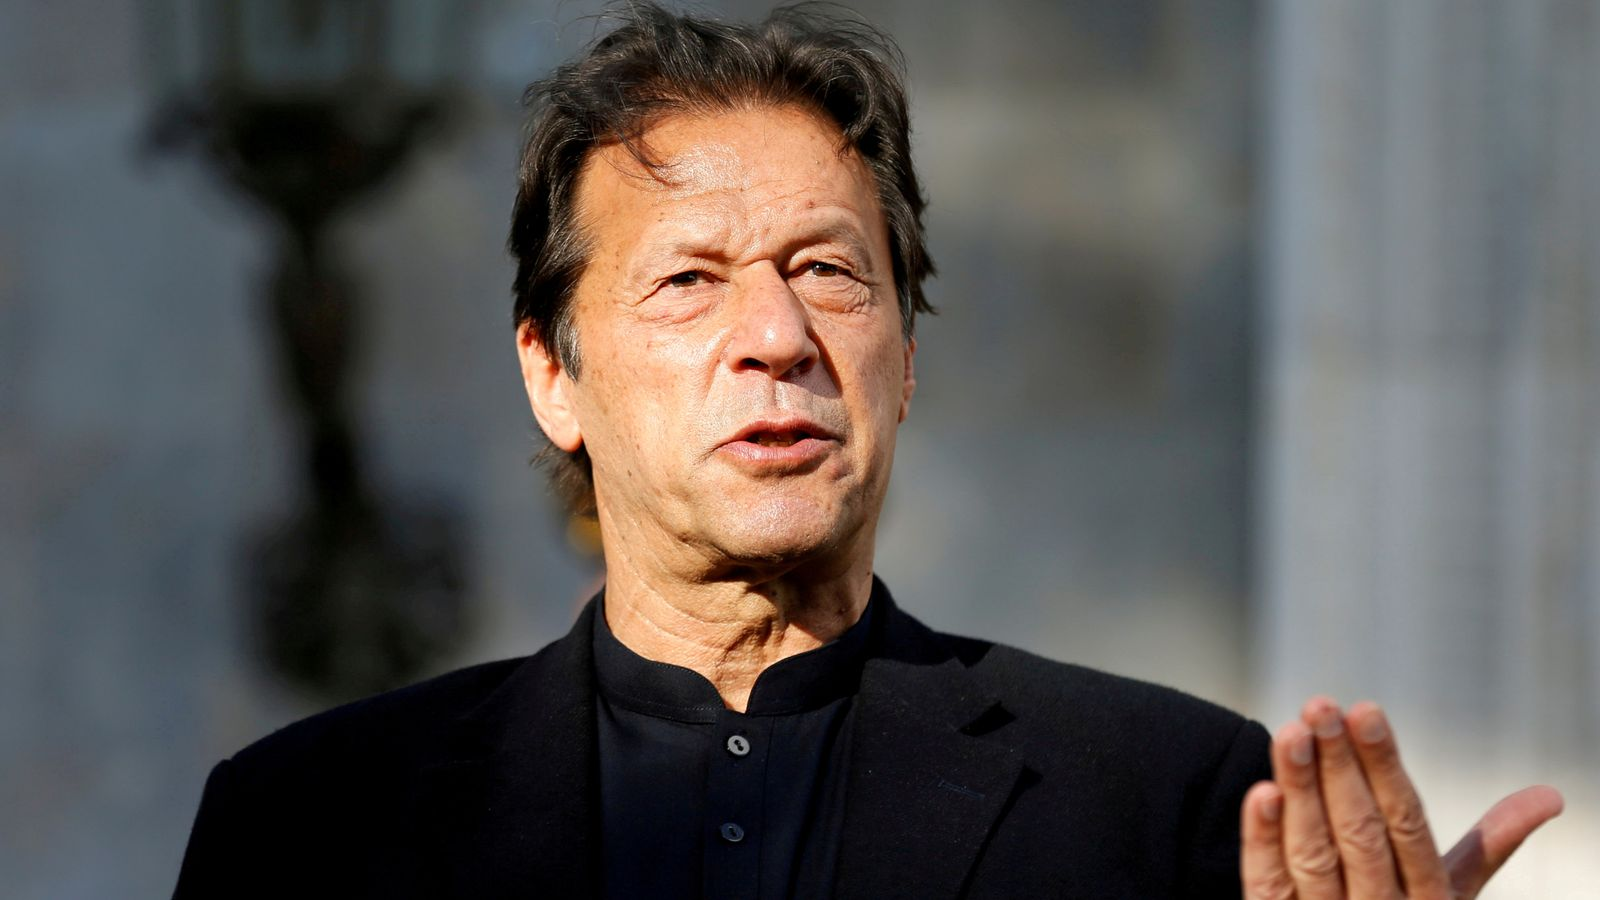 Outrage as Pakistan's PM links rise in rape cases to how women dress